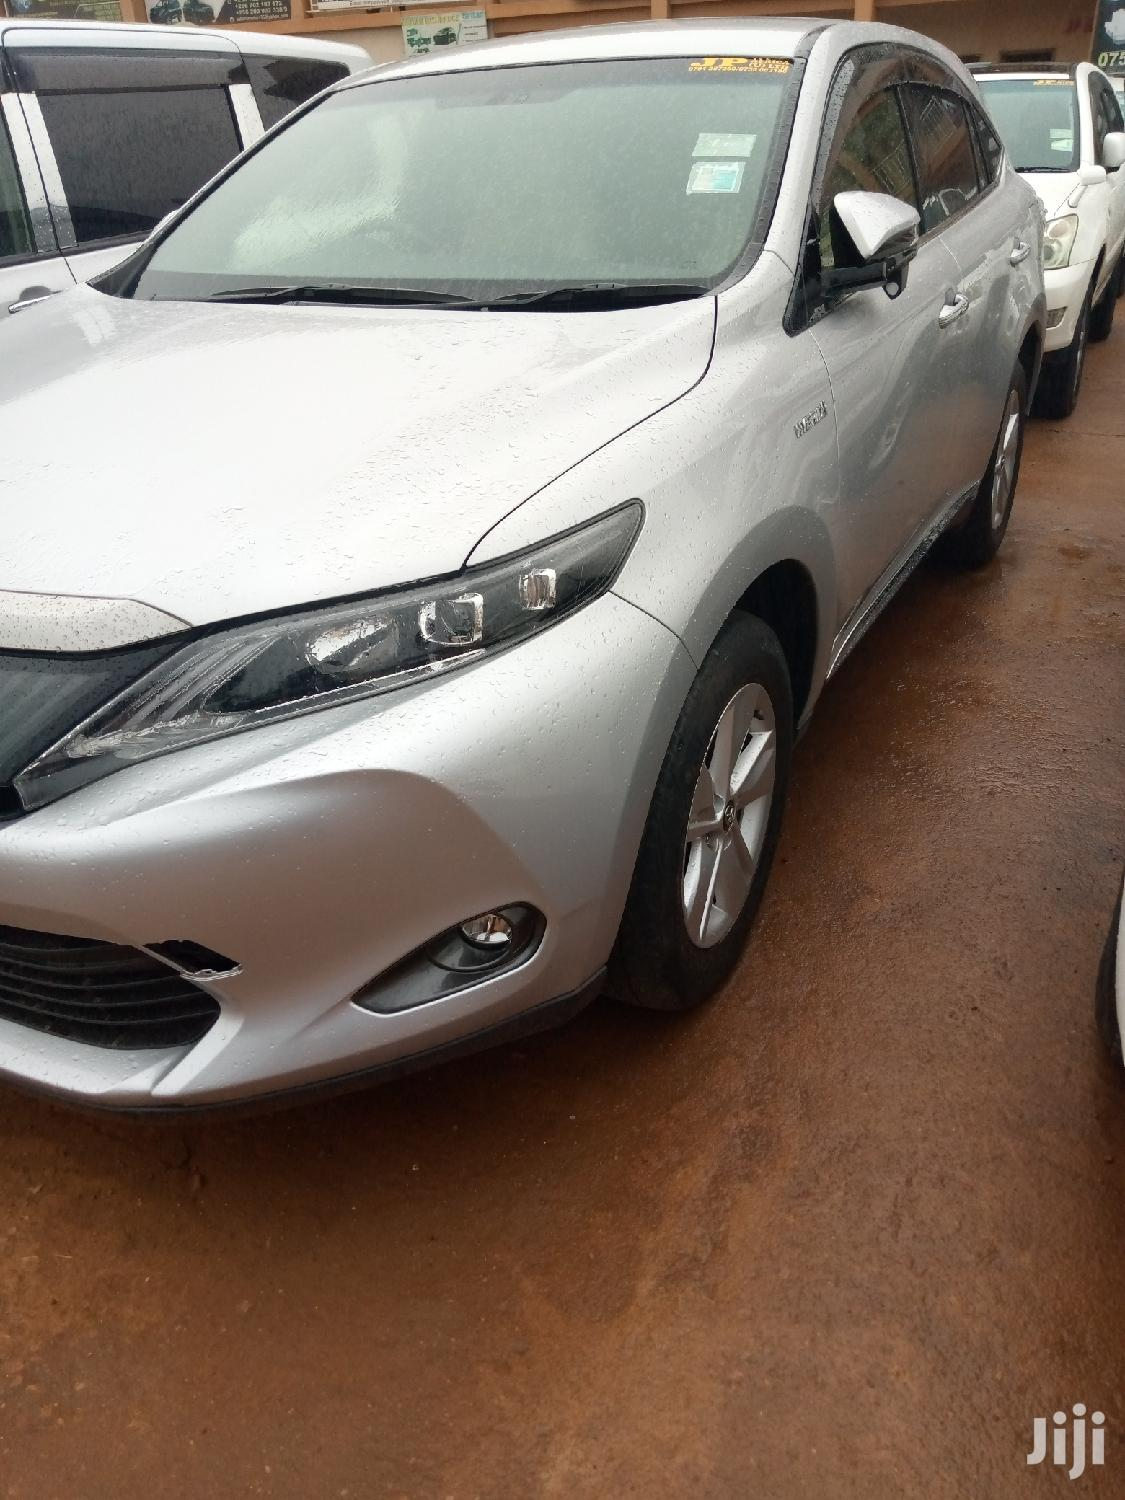 New Toyota Harrier 2015 Silver | Cars for sale in Kampala, Central Region, Uganda